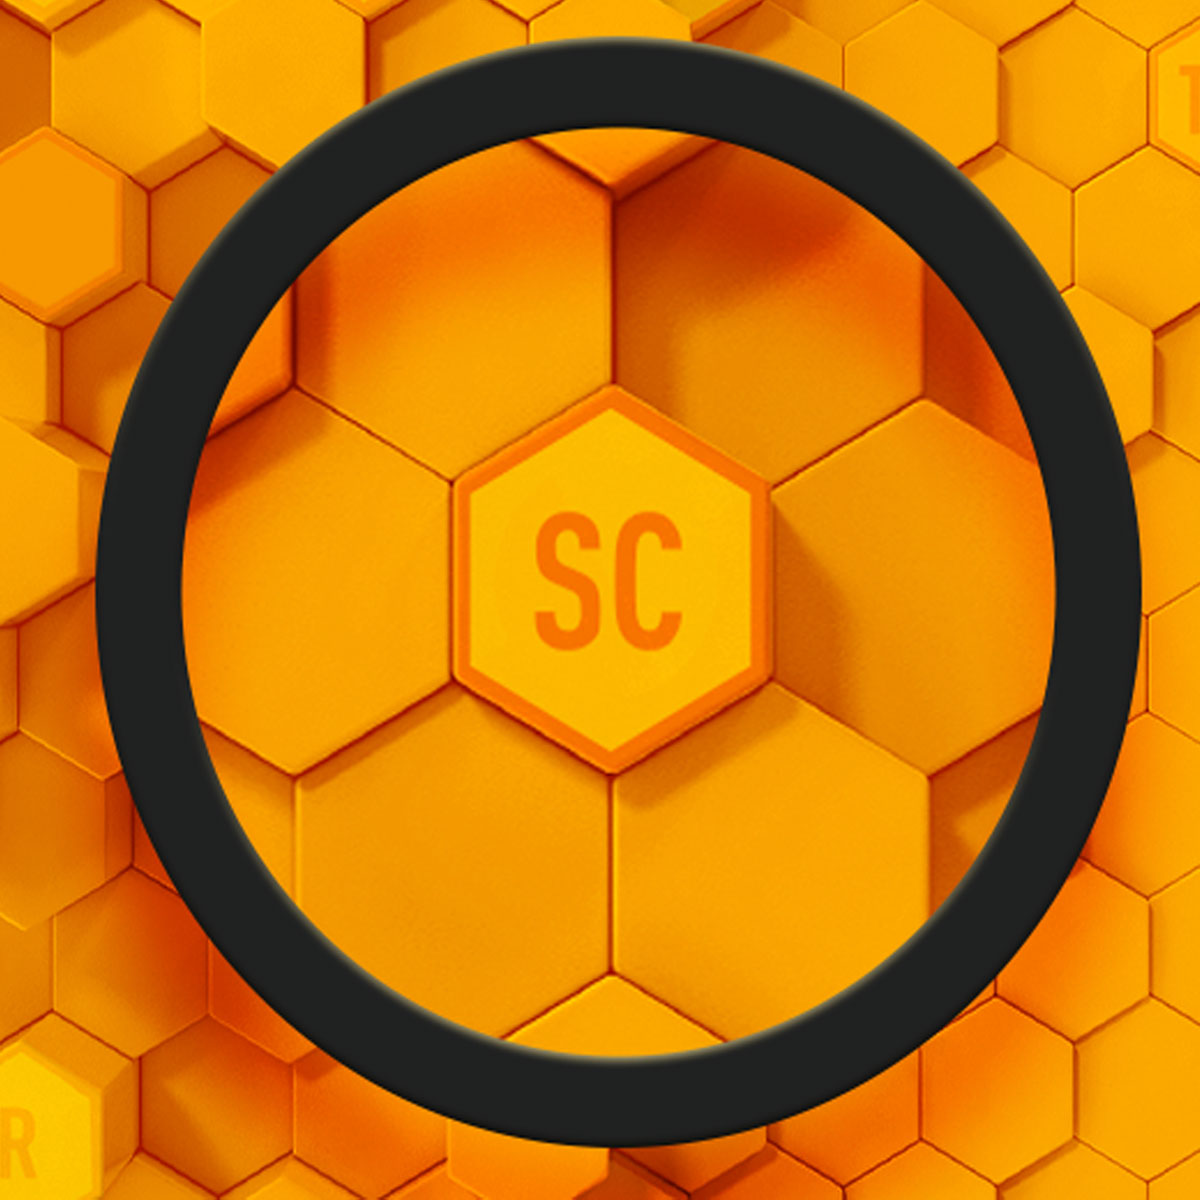 3d magnifying search on elements in honeycomb design